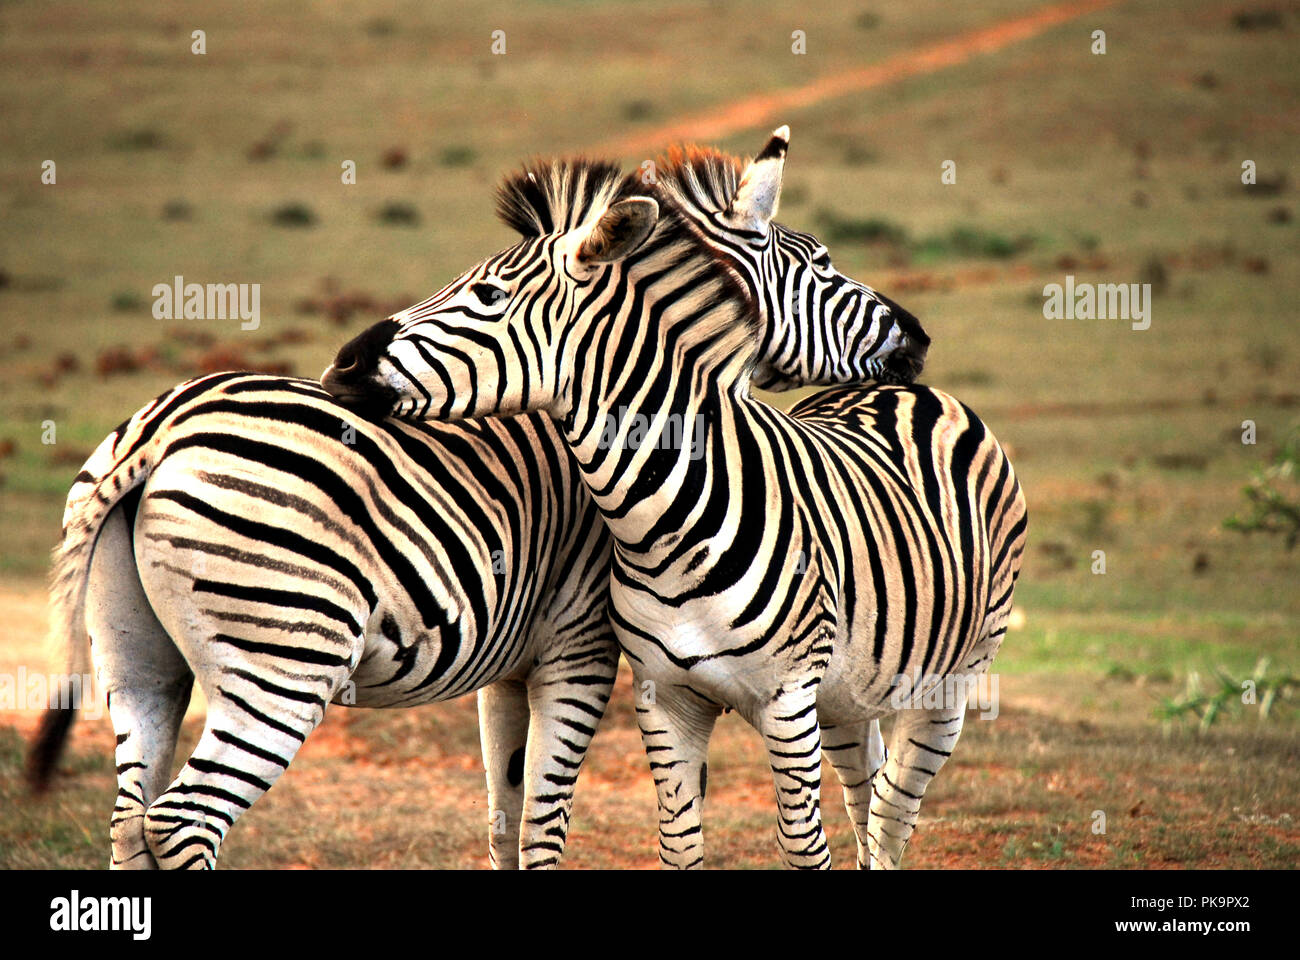 An image to make you smile.  Two Zebras showing affection by rest their heads on one another's rumps.  A great background or backdrop. - Stock Image